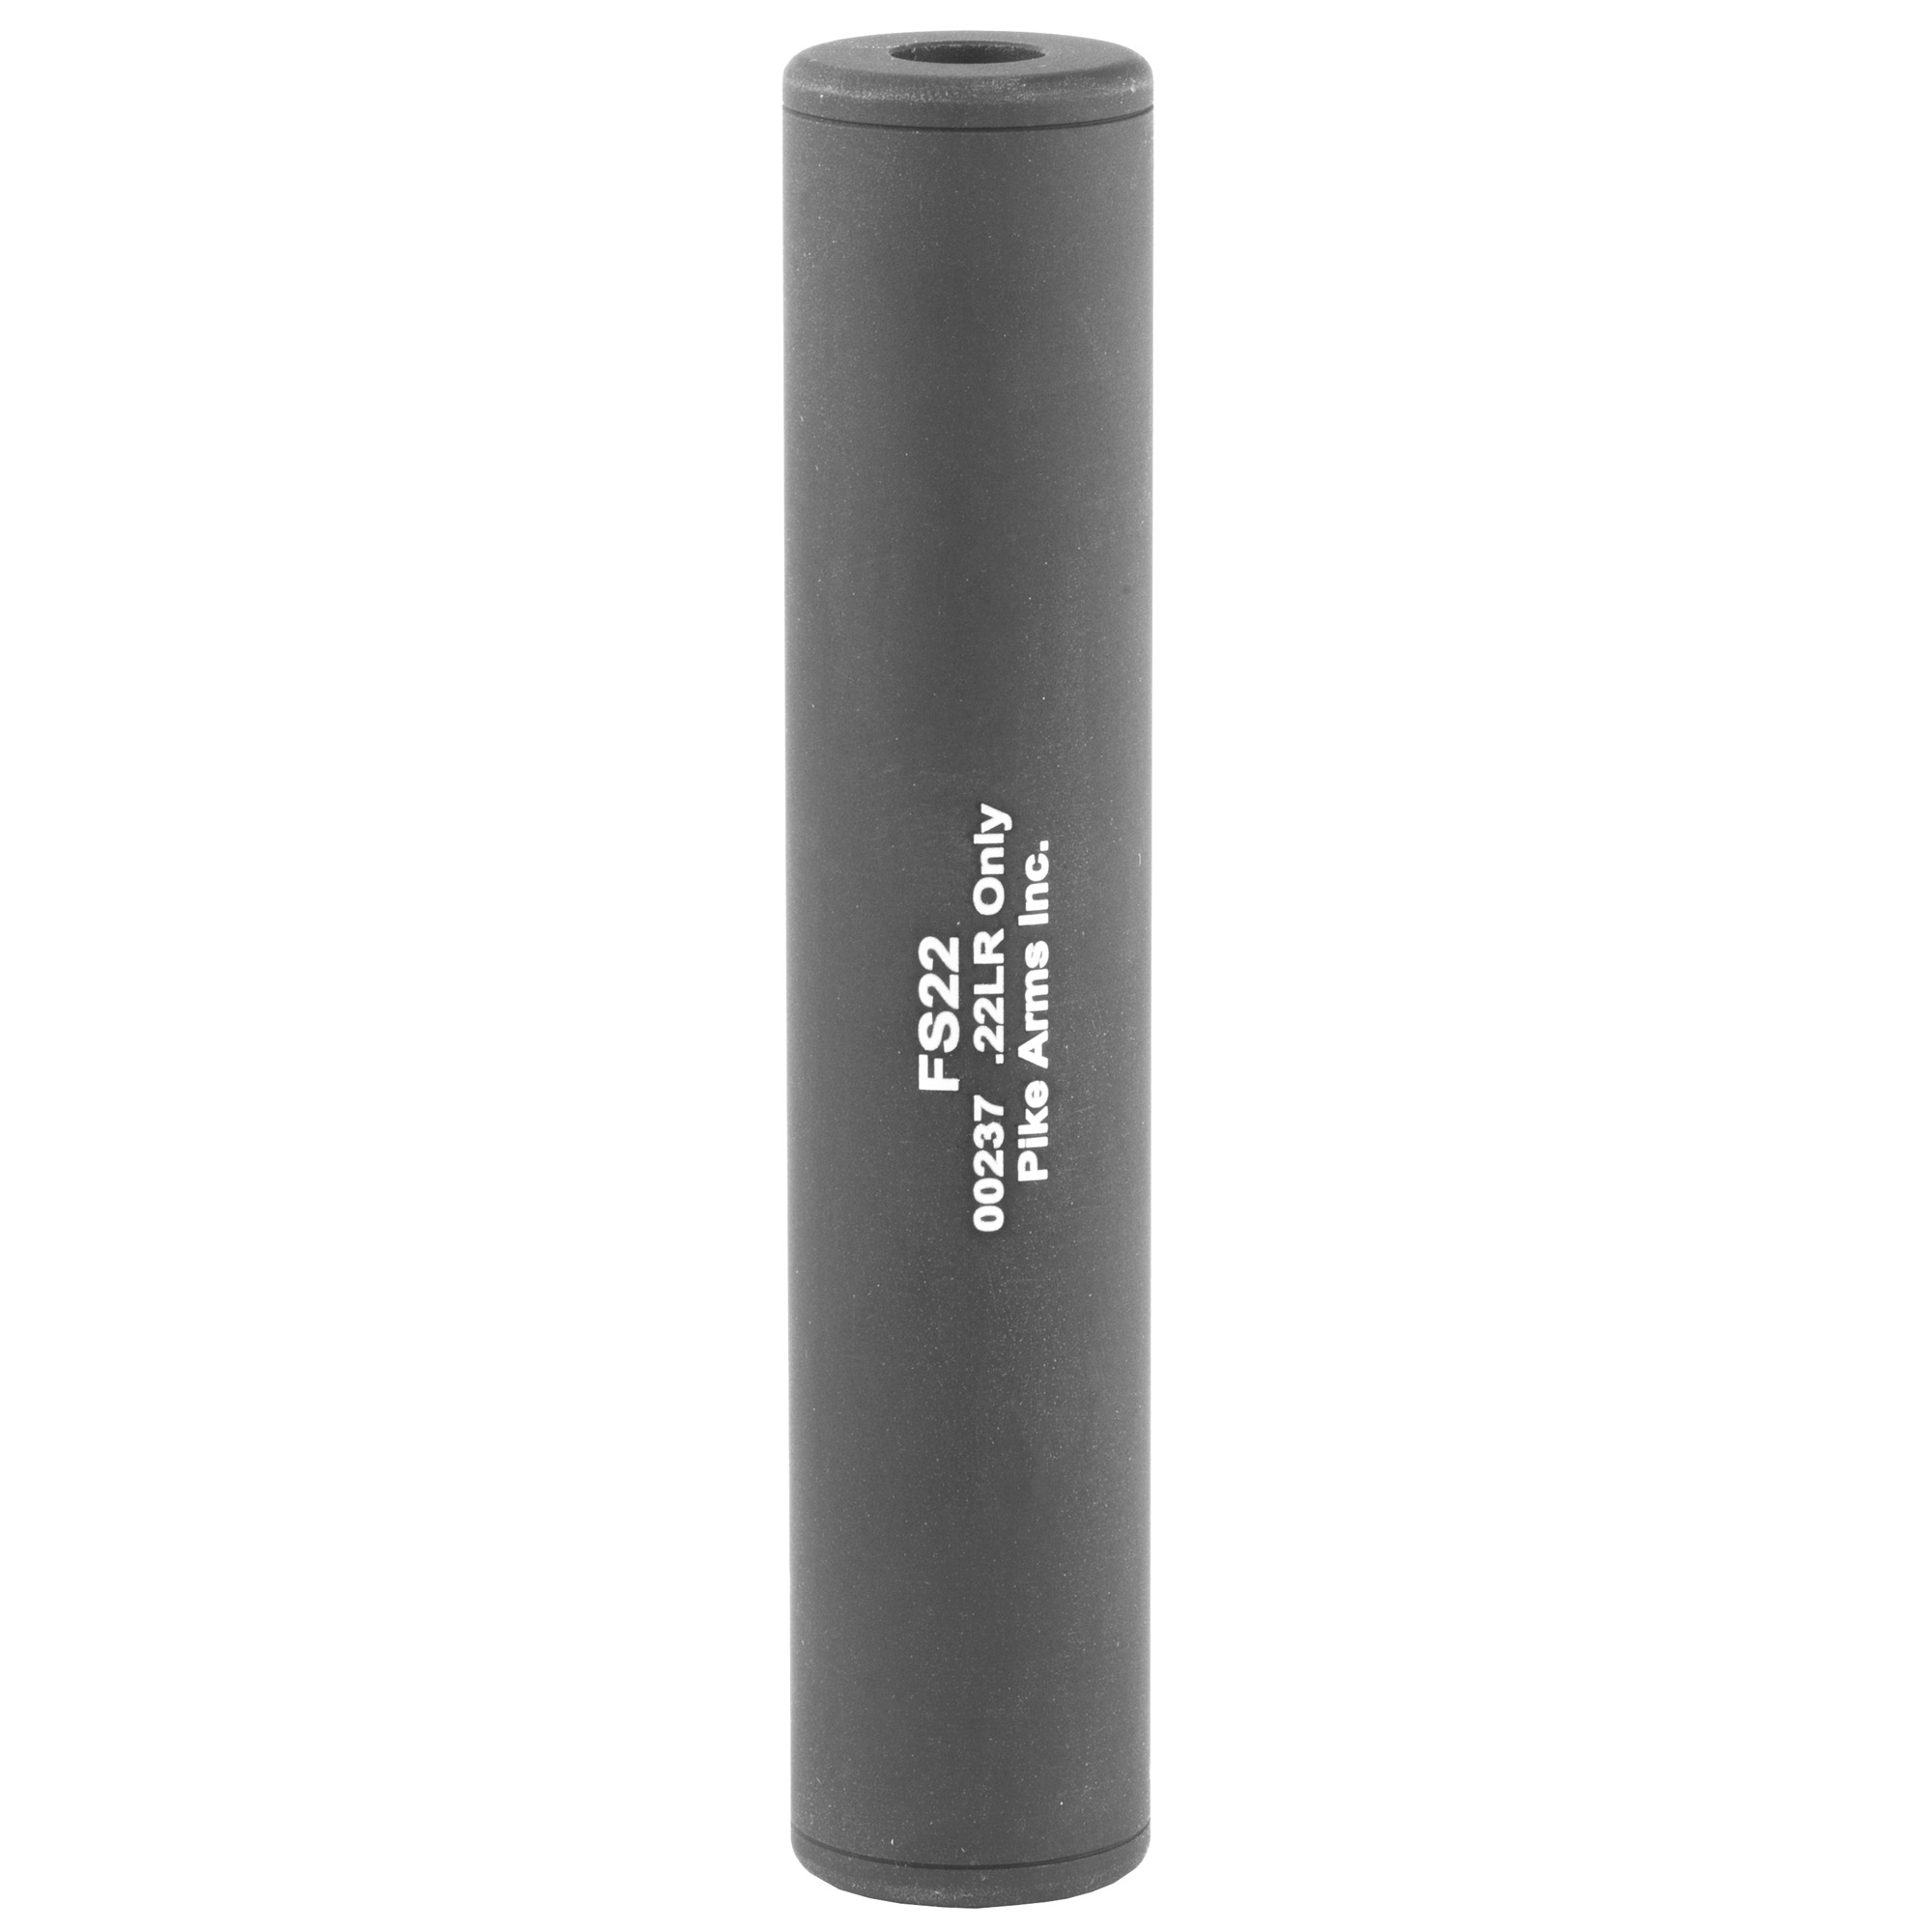 "Want the suppressor look without all the paperwork hassle and transfer tax expenses? Tactical Innovations' .22 LR Fake Suppressor is as close to a real suppressor as you can get without paying the tax stamp. Its CNC precision machined from solid aluminum with a durable hard black anodized finish and its professionally laser engraved identically to their real NFA registered suppressors. Since its a fake suppressor"" the sound is not reduced and bullet impact is not changed. Many customers do prefer the weight and balance improvement that the suppressor provides. It's perfect for use on a Walther P22 with one of Tactical Innovations' Walther Thread Adapter Assemblies and will work on any .22LR rifle or pistol that has the barrel threaded 1/2x28 TPI."